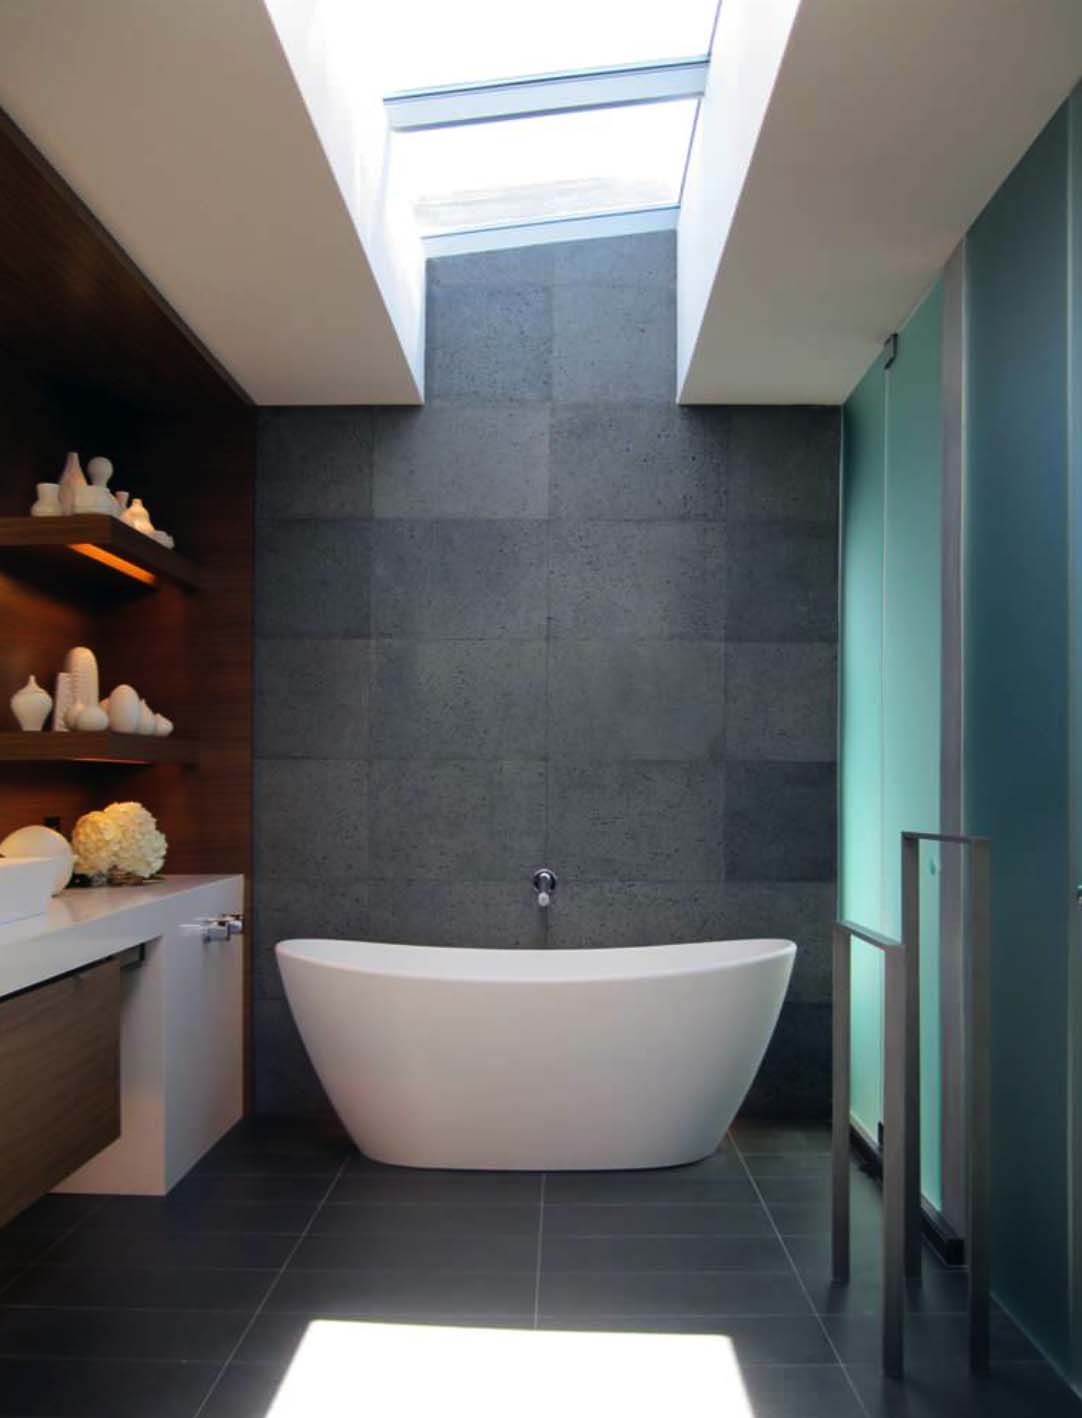 Freestanding-Tubs-Bathroom-Ideas-05-1 Kindesign